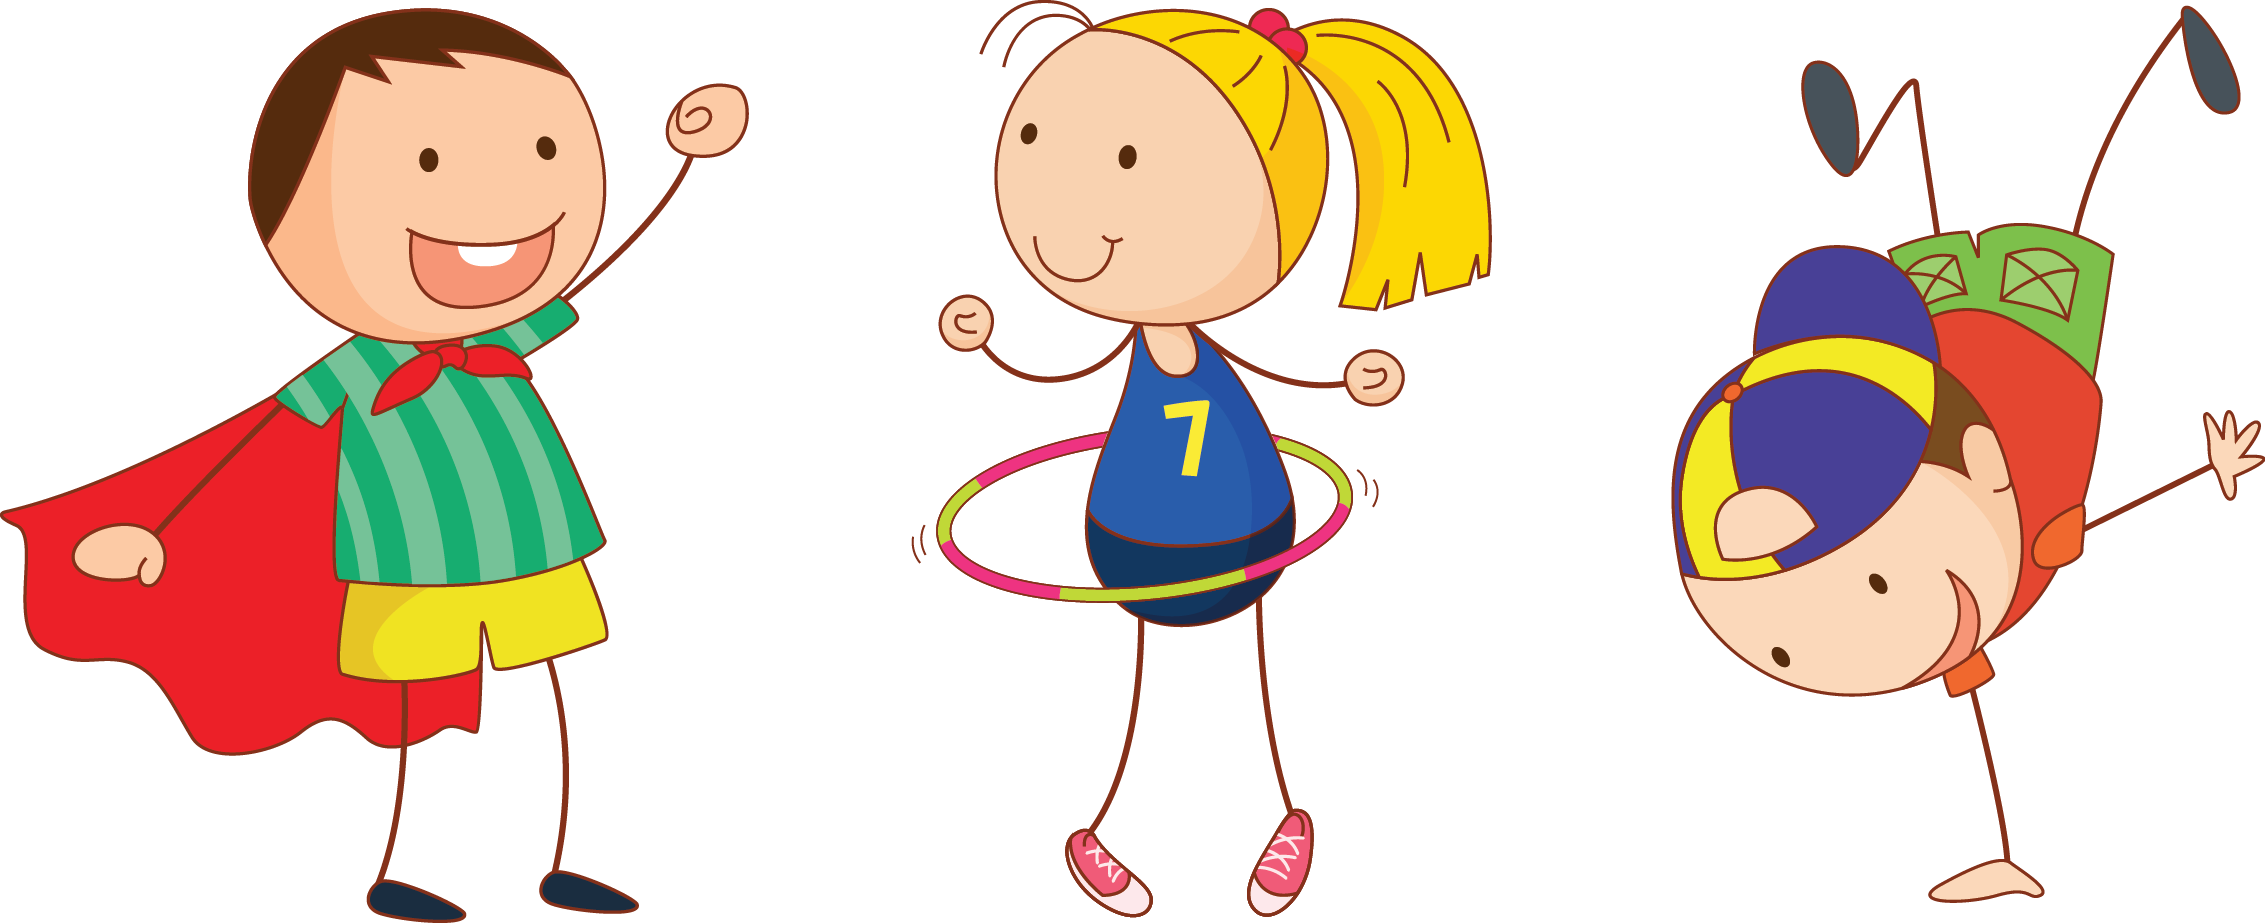 Kids png transparent images. Exercise clipart childrens